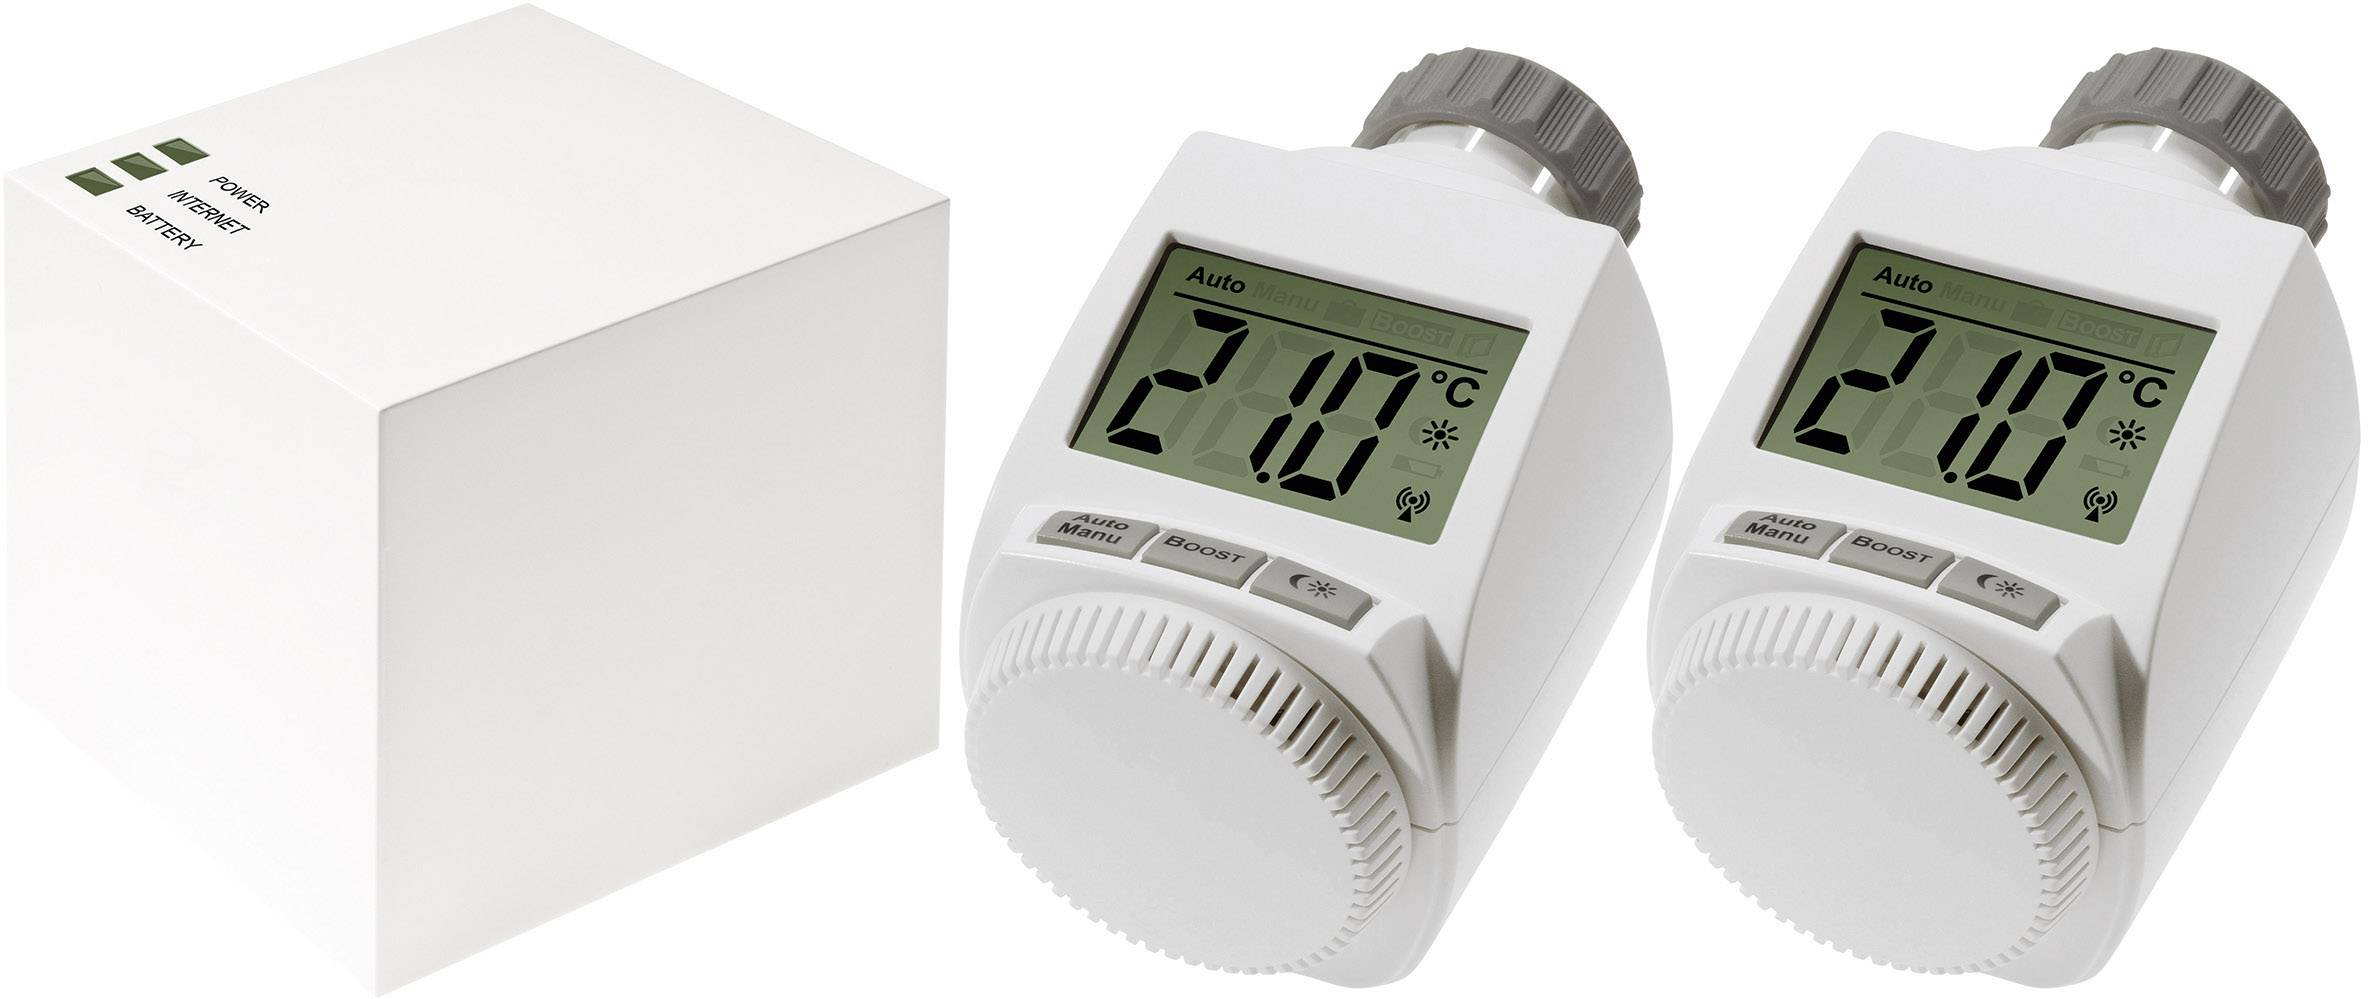 Heizkörperthermostat Max Max Funk Heizkörperthermostat Set Cube Two